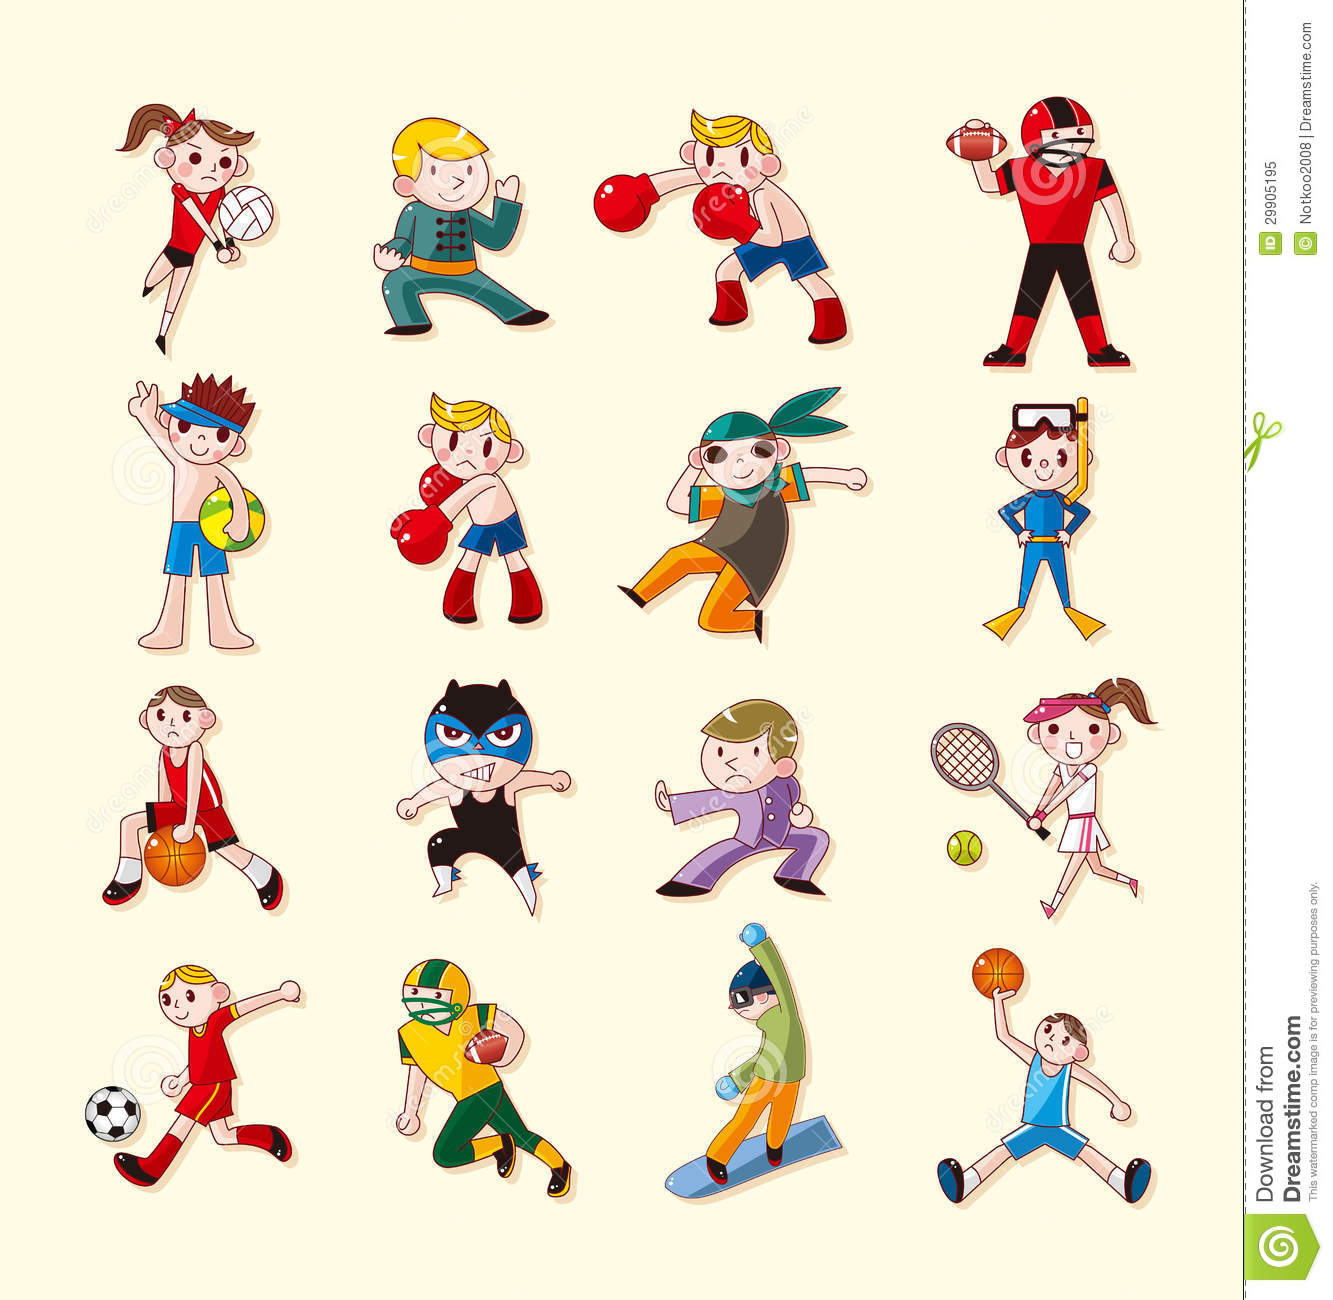 Sport Player Icons Set Royalty Free Stock Photo - Image: 29905195